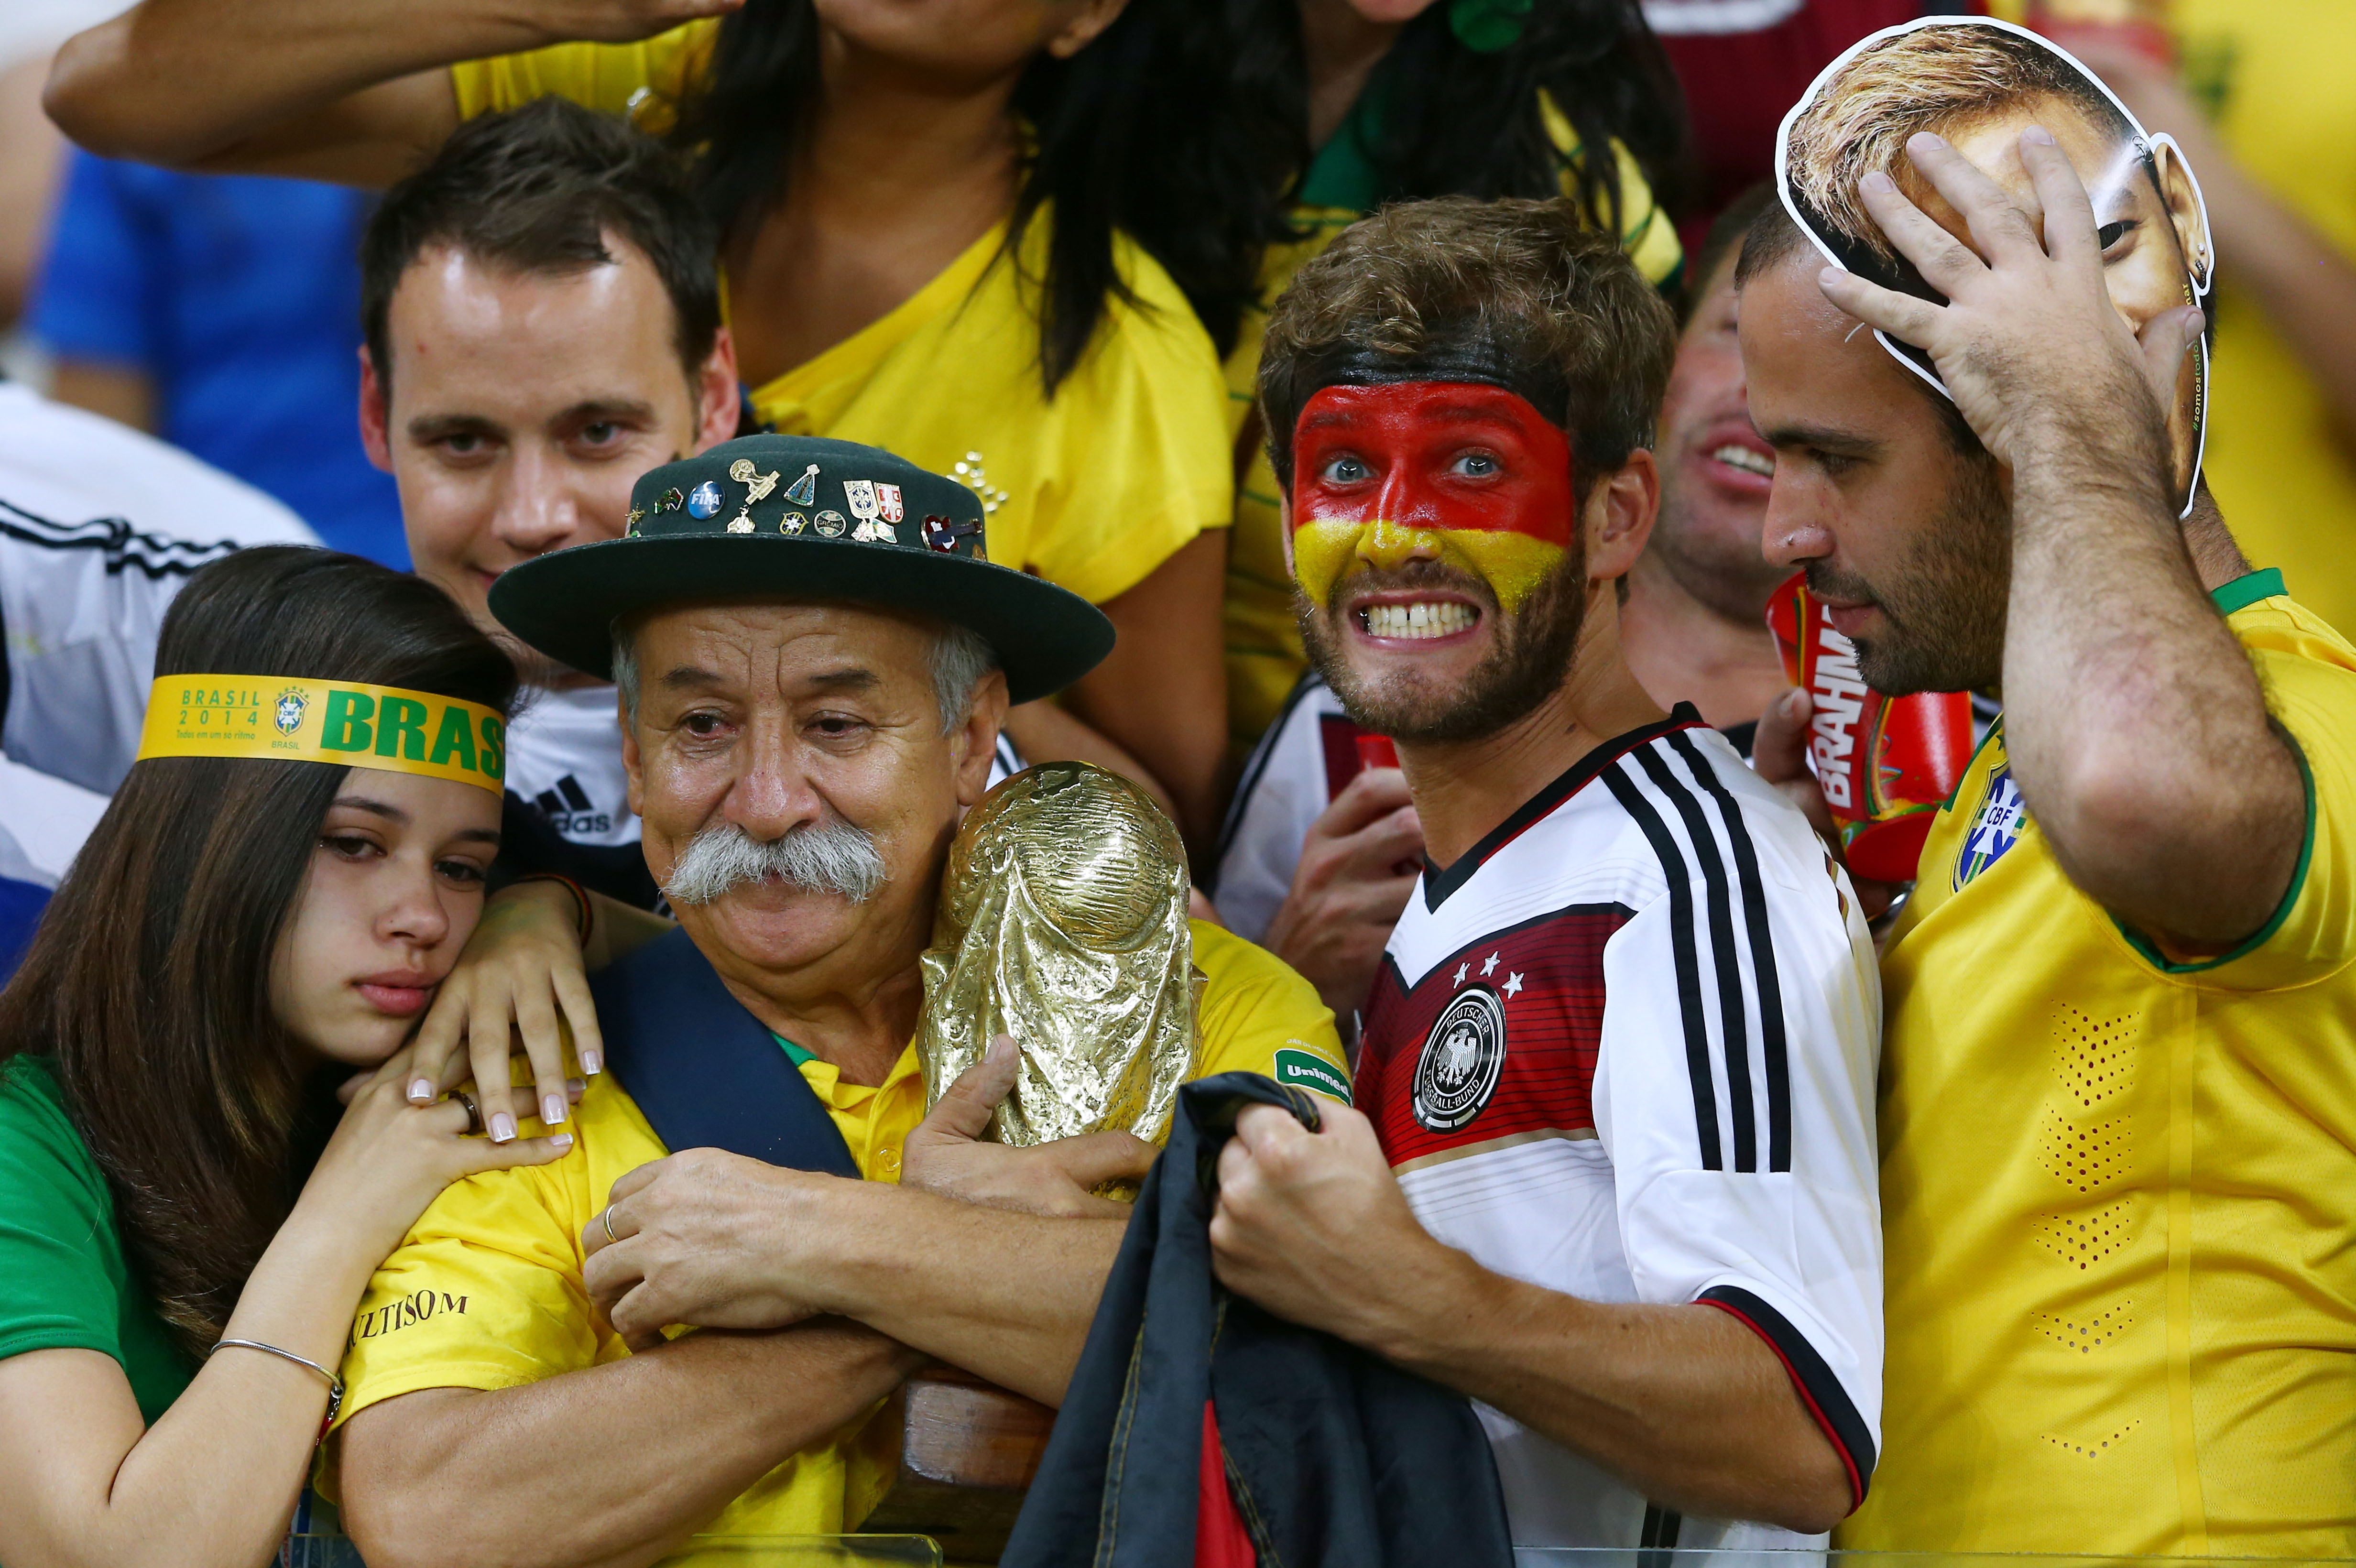 A Germany fan reacts while surrounded by dejected Brazil fans after Germany's 7-1 win during the 2014 FIFA World Cup Brazil Semi Final match between Brazil and Germany at Estadio Mineirao on July 8, 2014 in Belo Horizonte, Brazil.